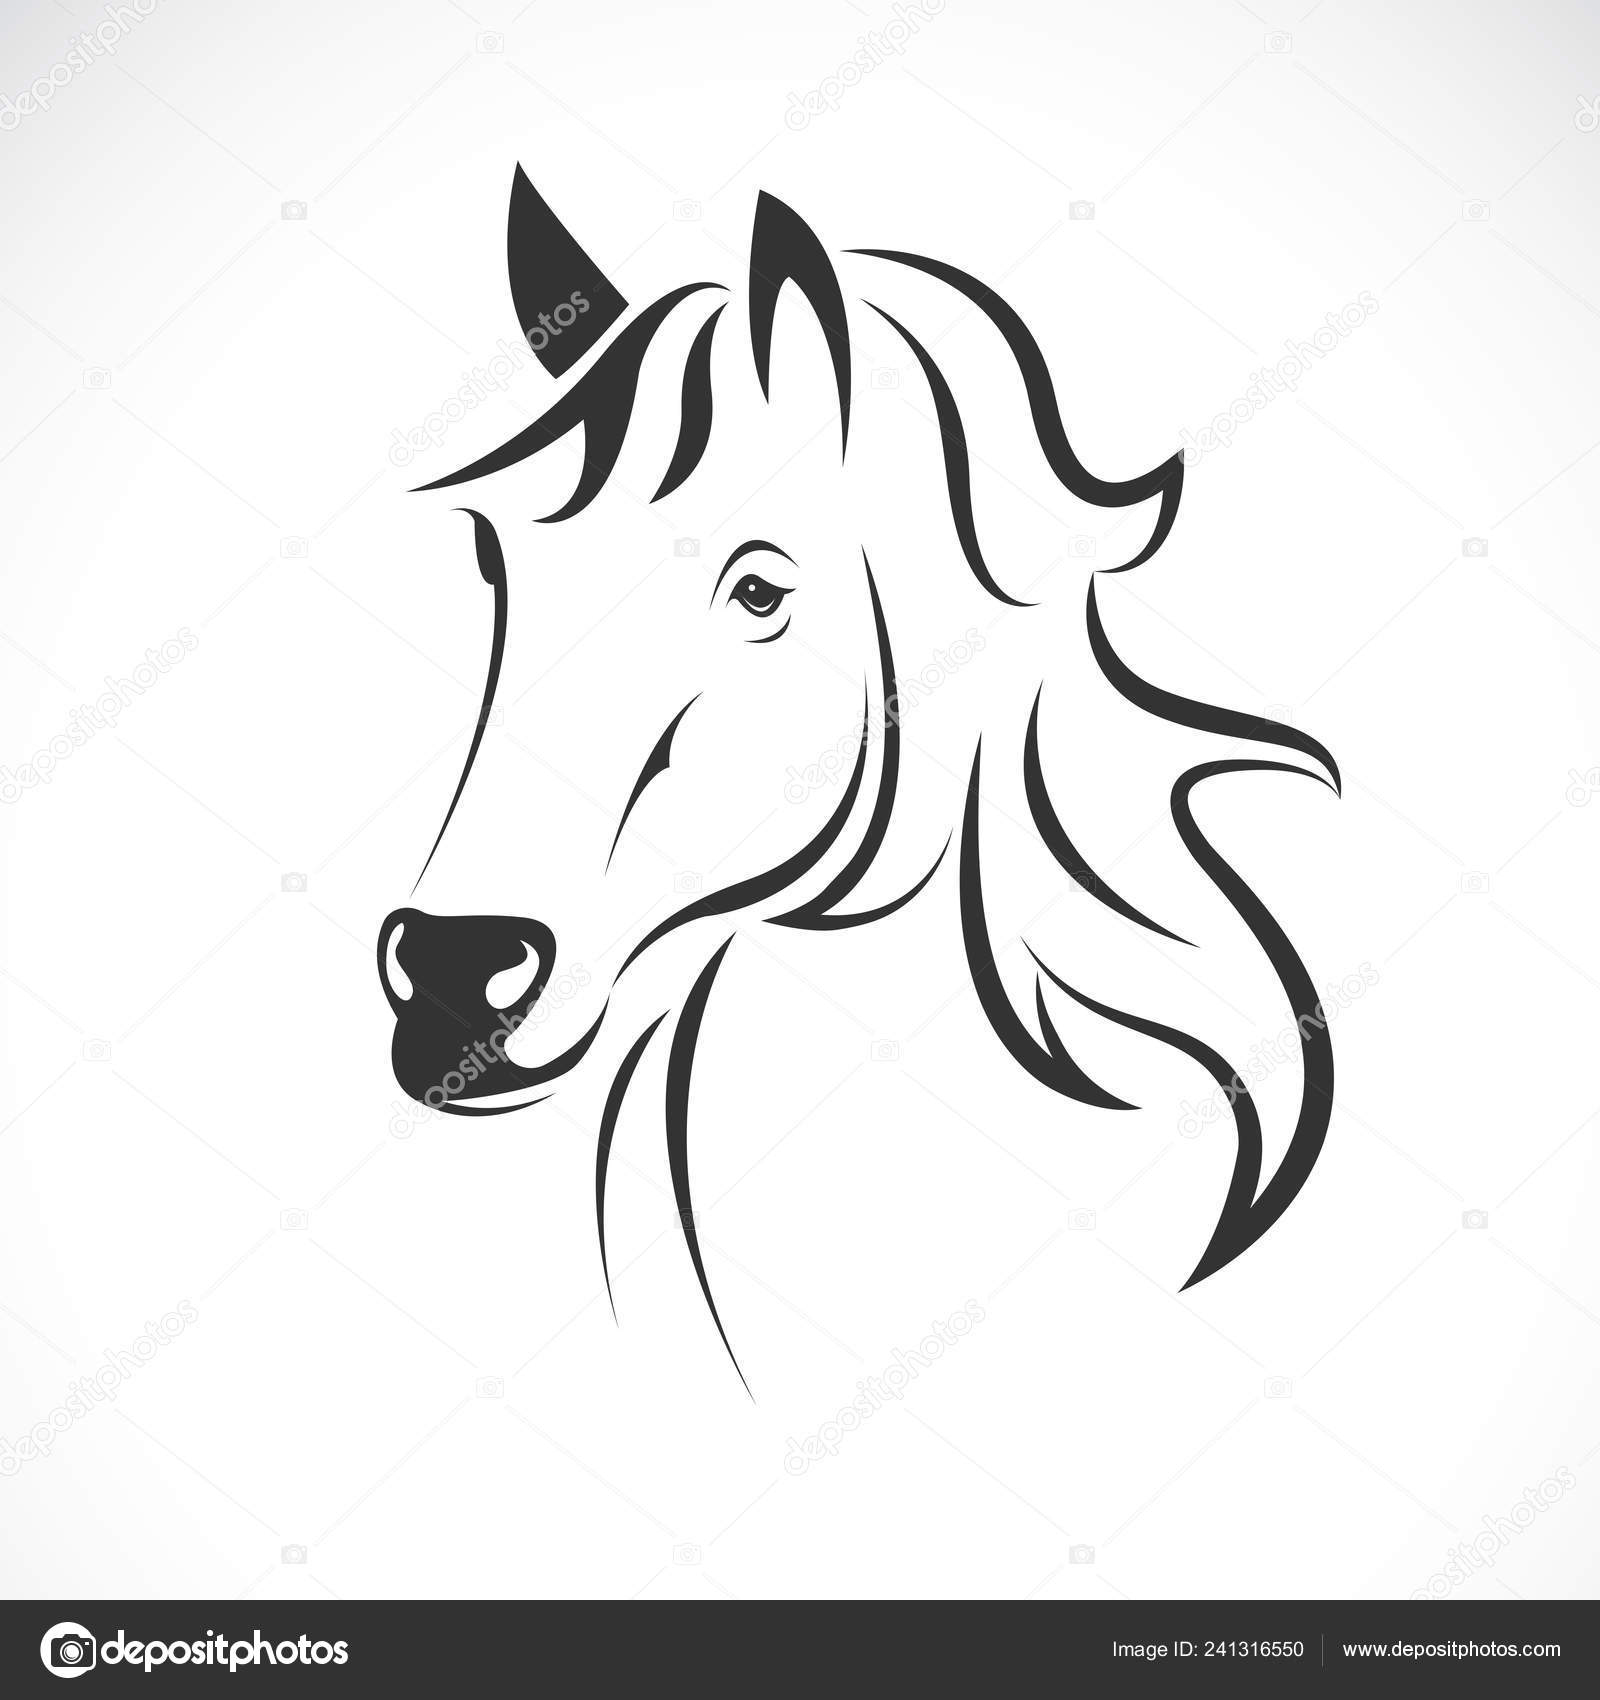 Vector Horse Head Design White Background Wild Animals Easy Editable Stock Vector C Yod67 241316550